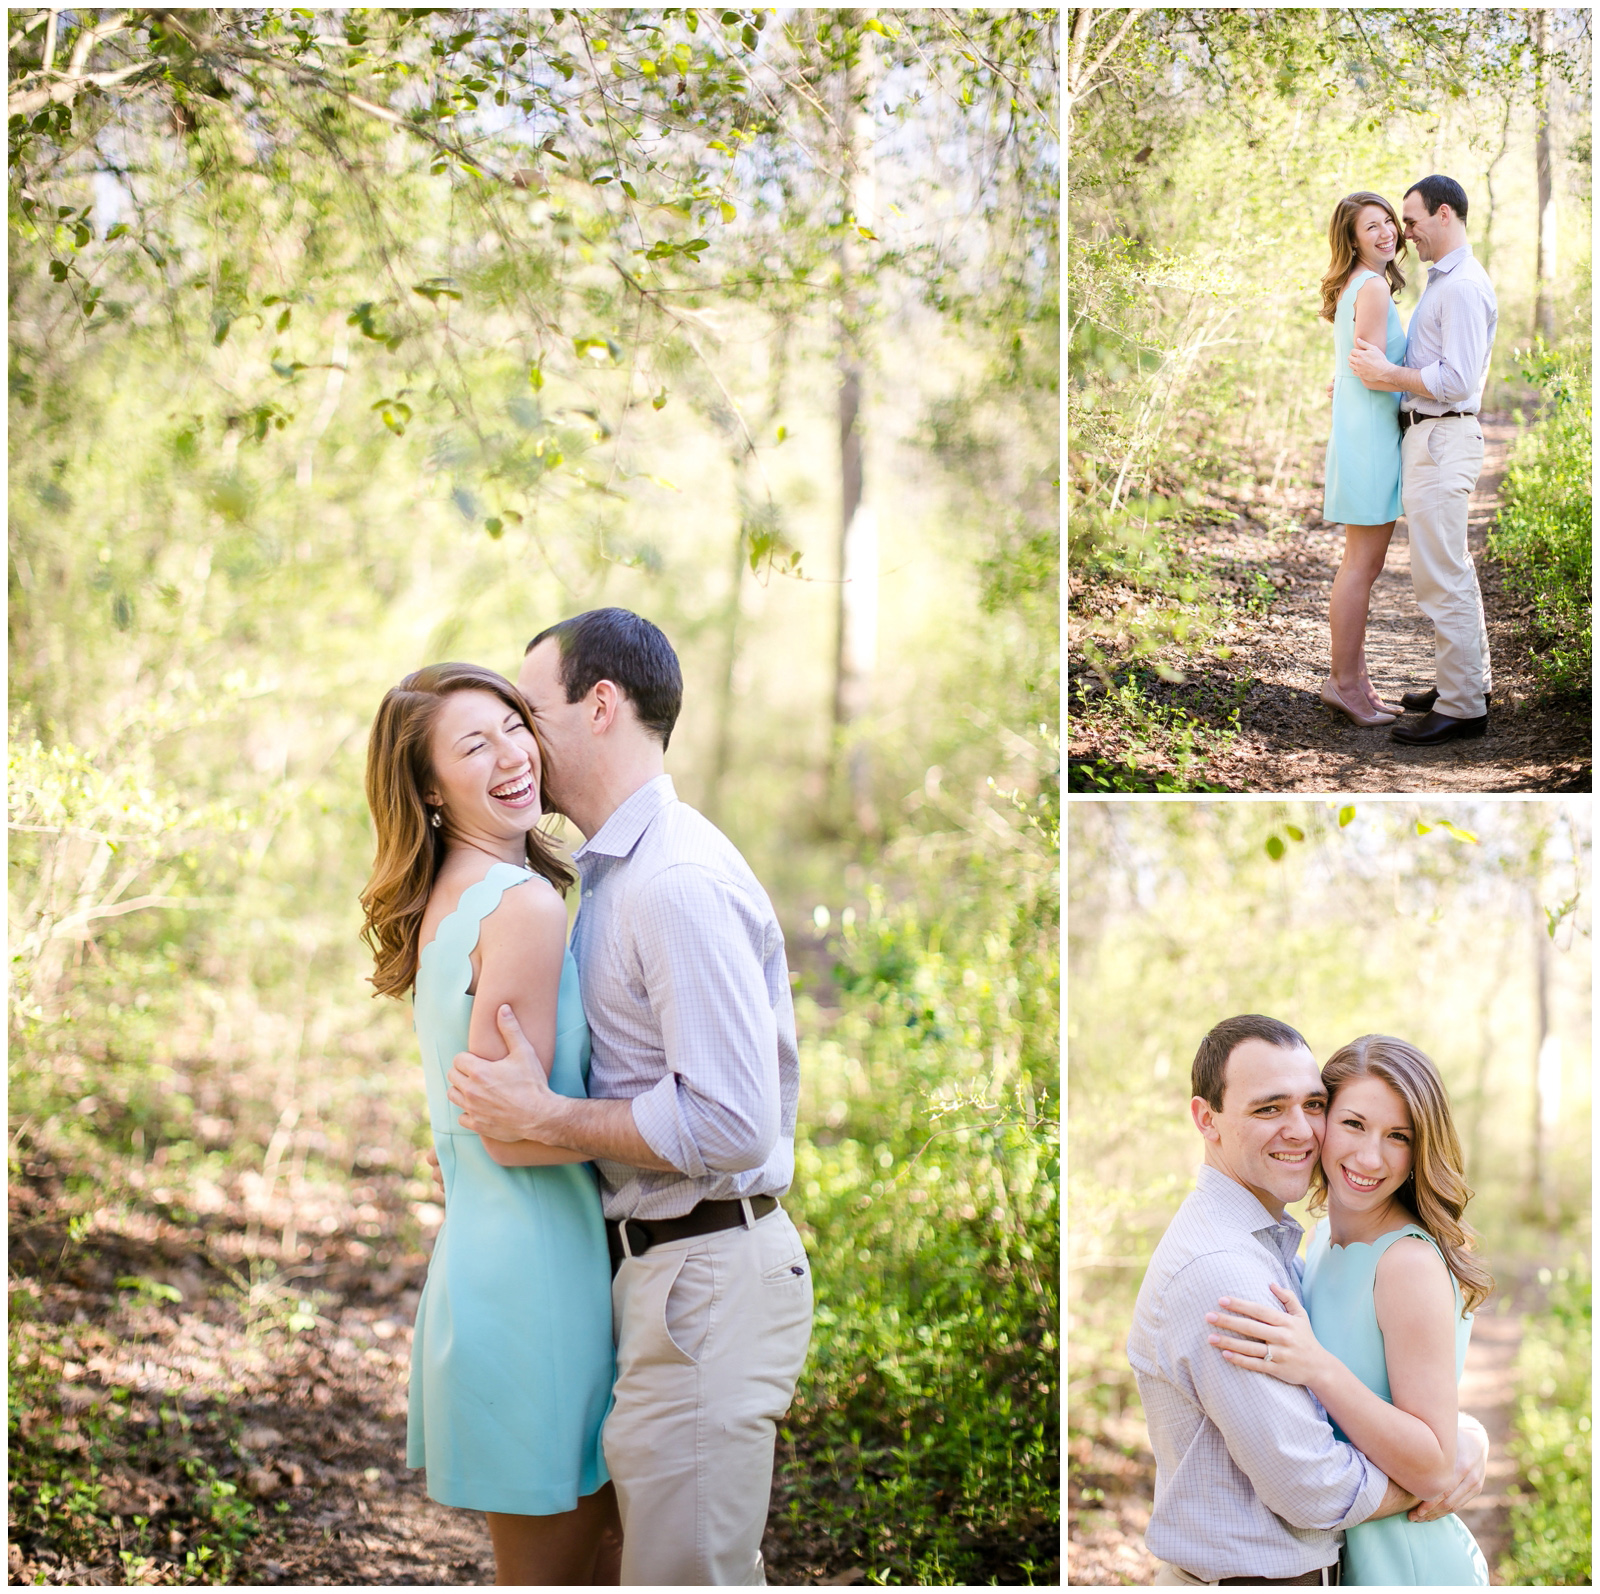 ArdentStoryHannahDavidEngaged_AtlantaEngagement_0007